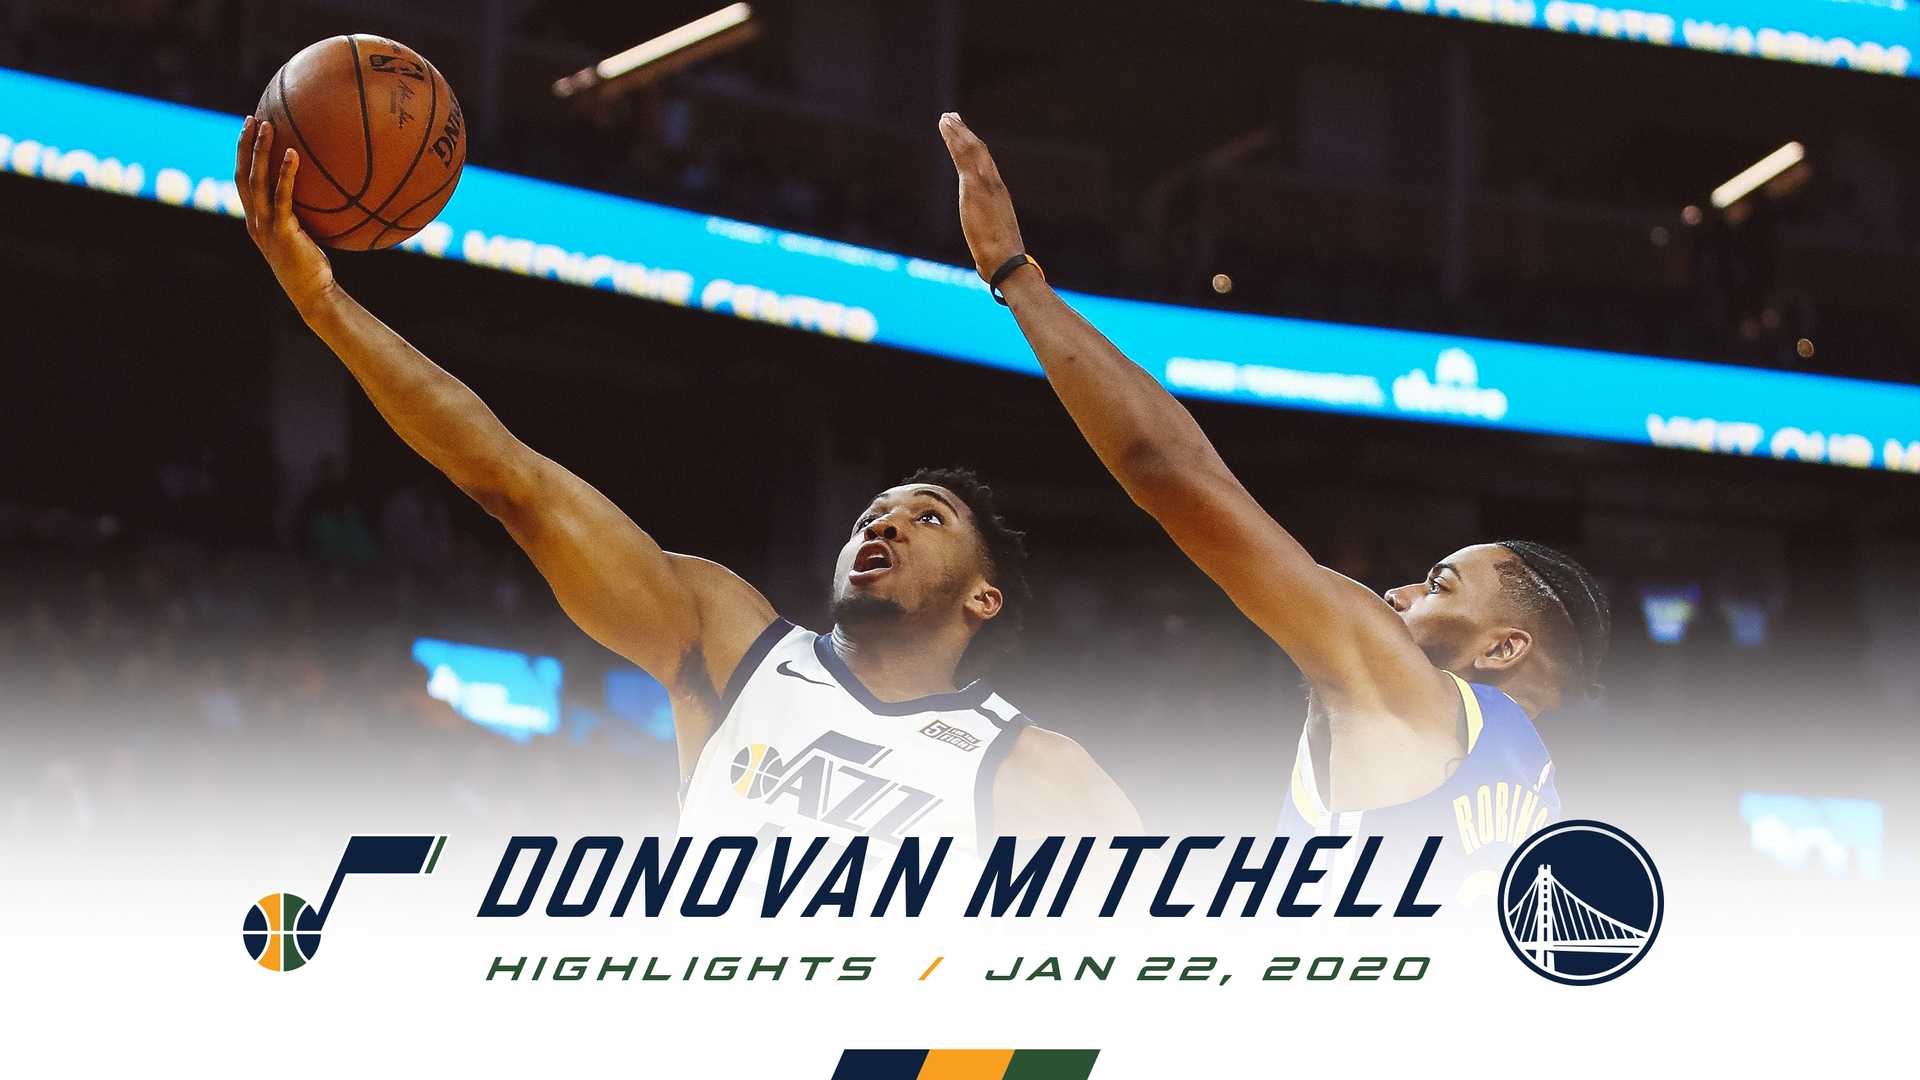 Highlights: Donovan Mitchell—23 points, 4 3pm